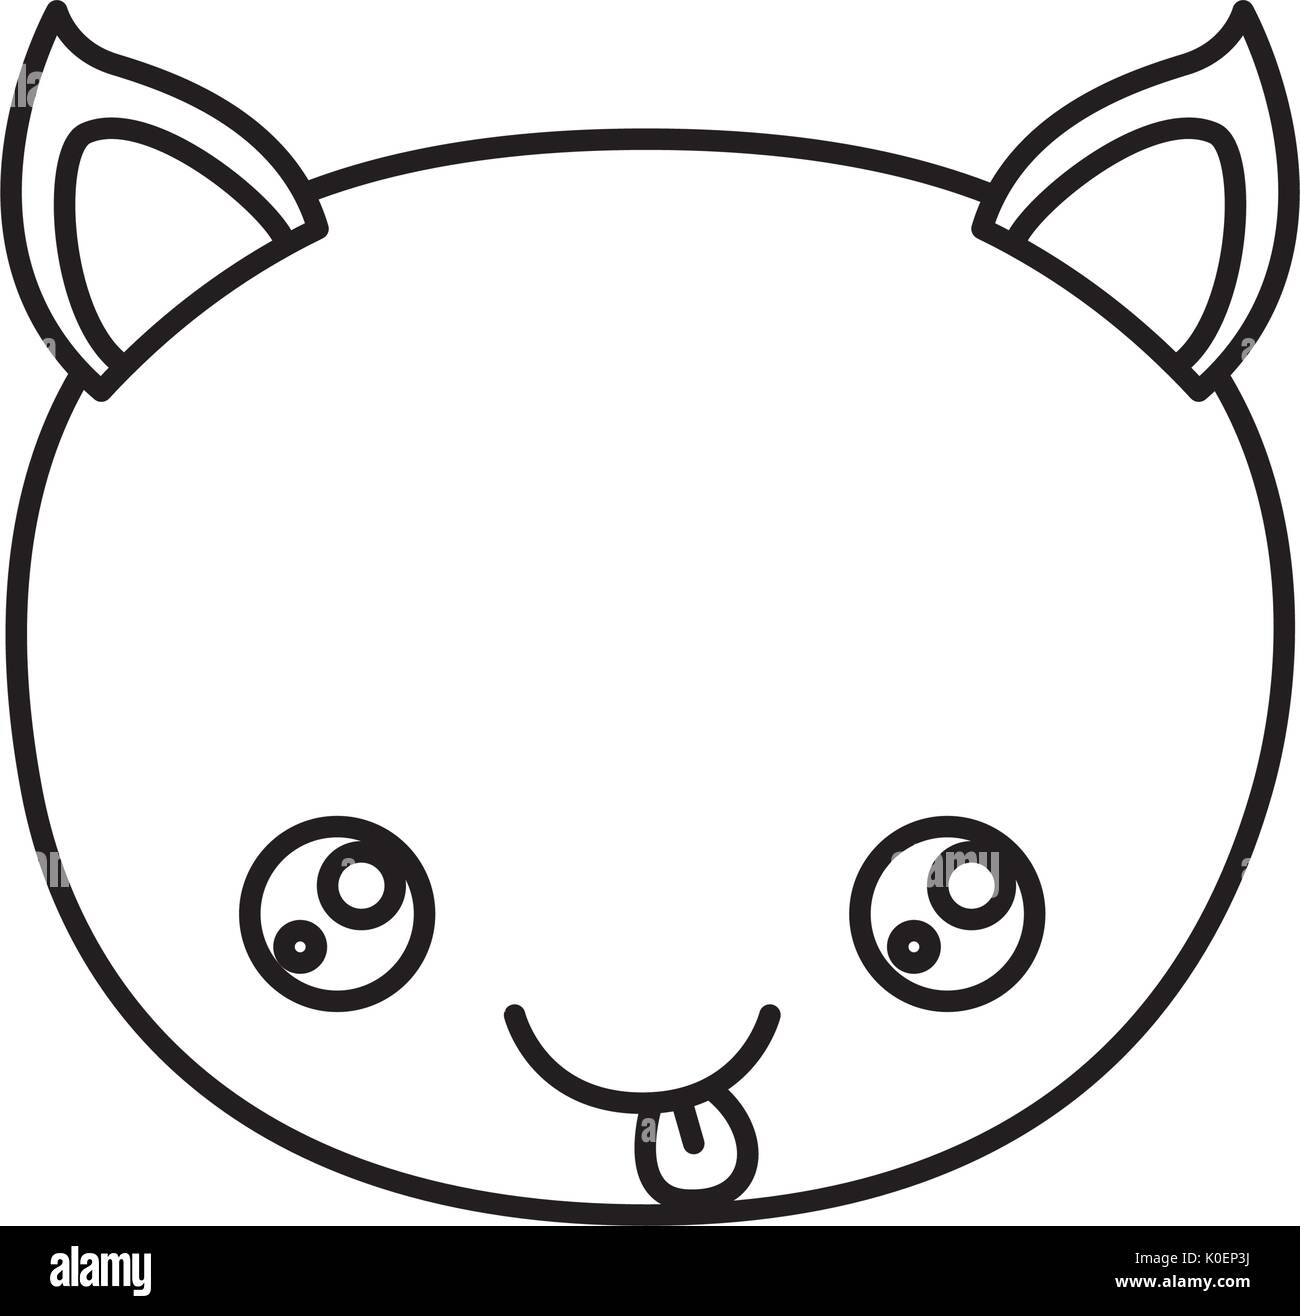 sketch silhouette of kawaii caricature face cat cute animal tongue out expression - Stock Image